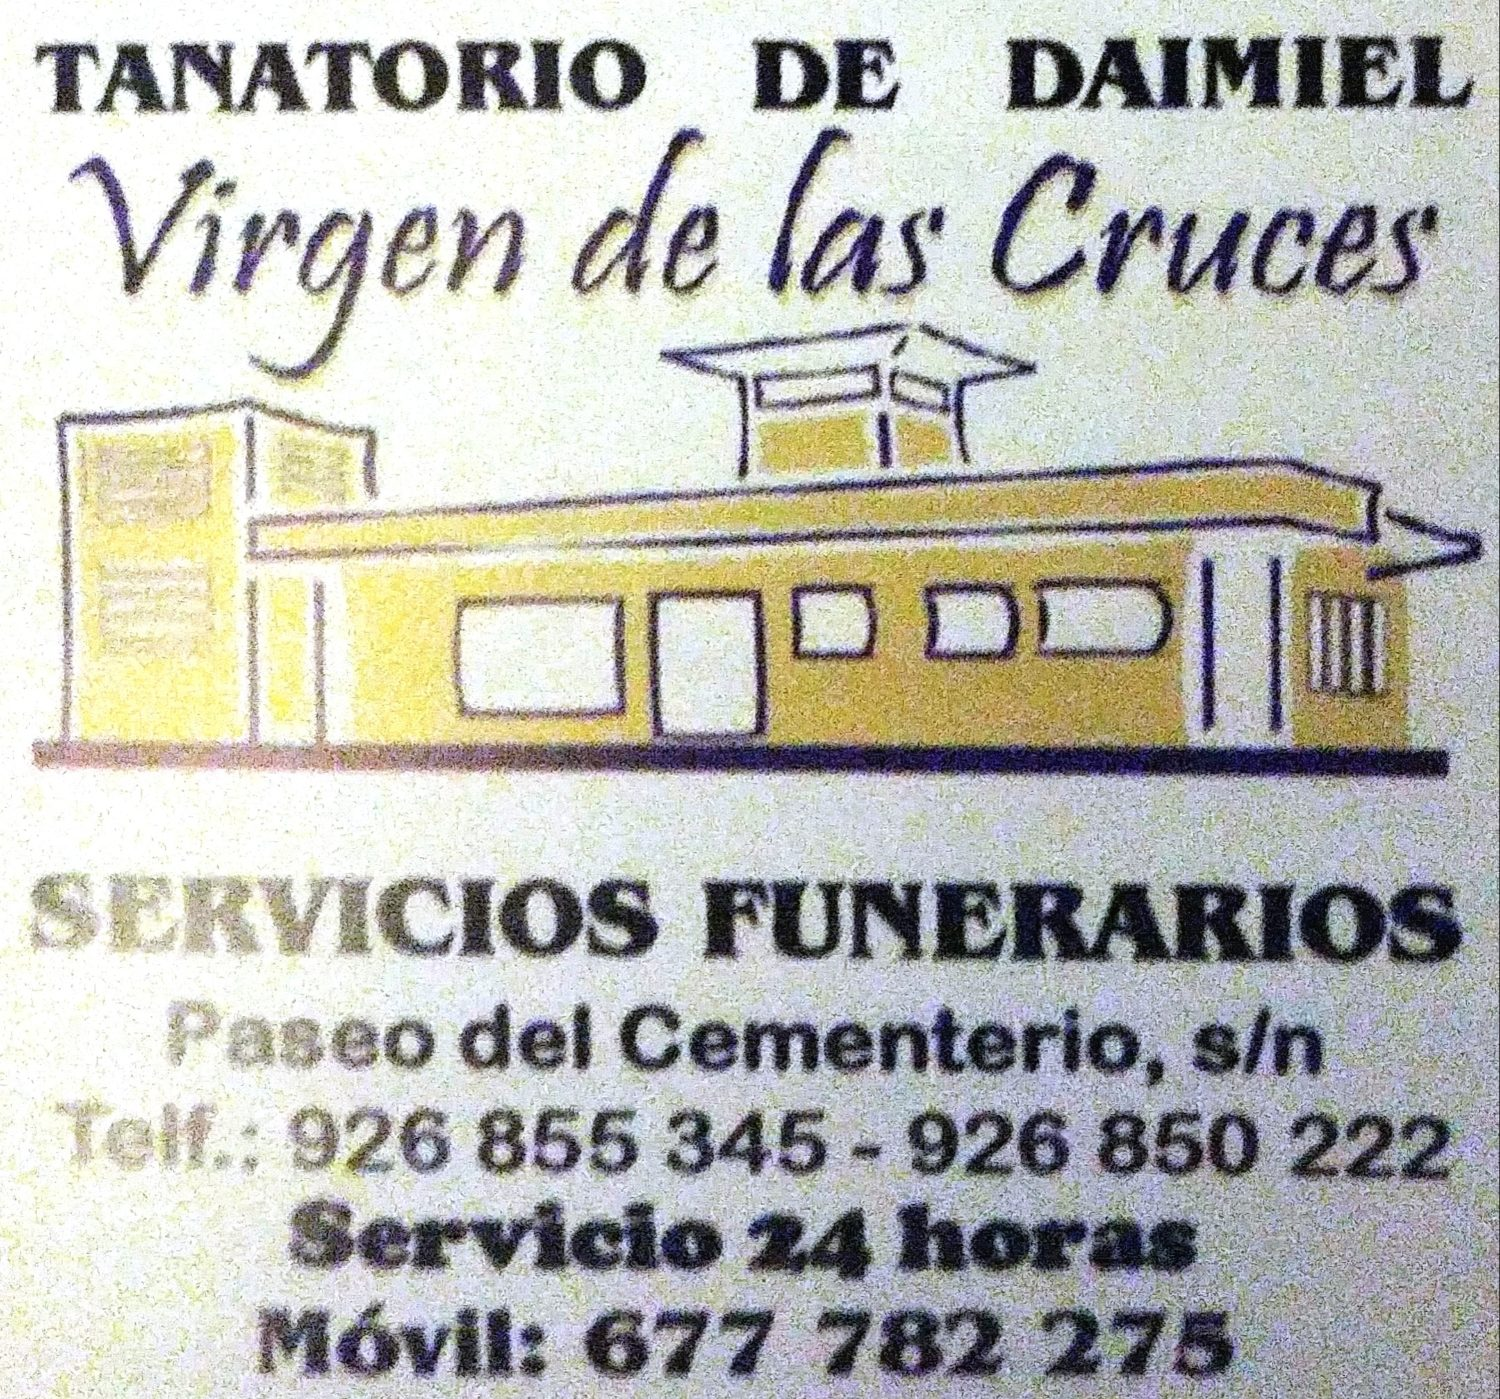 Tanatorio Virgen de las cruces